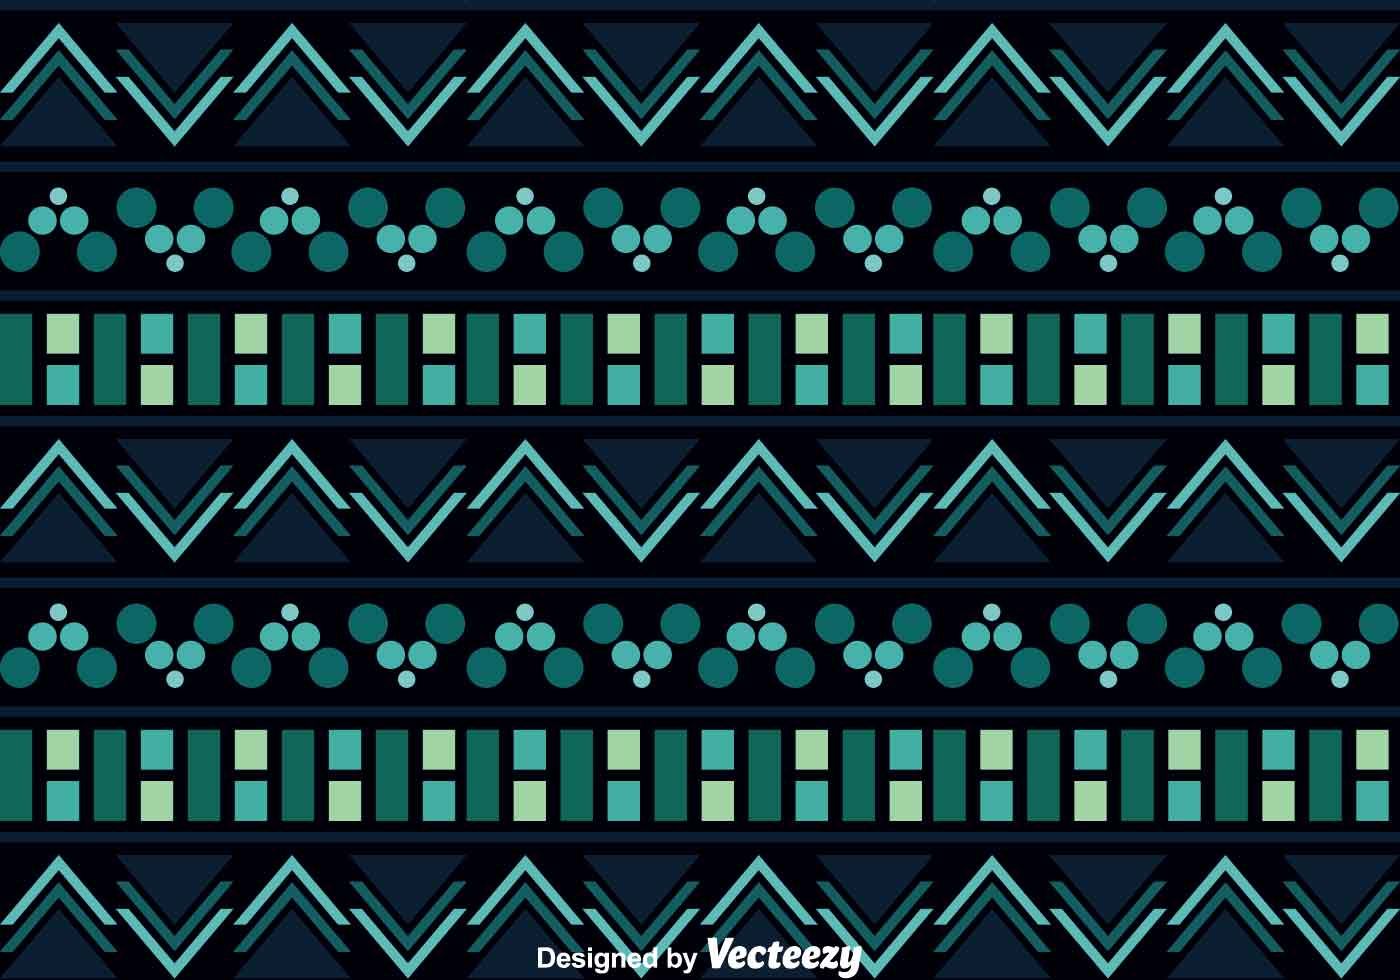 Cute Tribal Patterns Wallpaper Aztec Pattern On Dark Background Download Free Vector